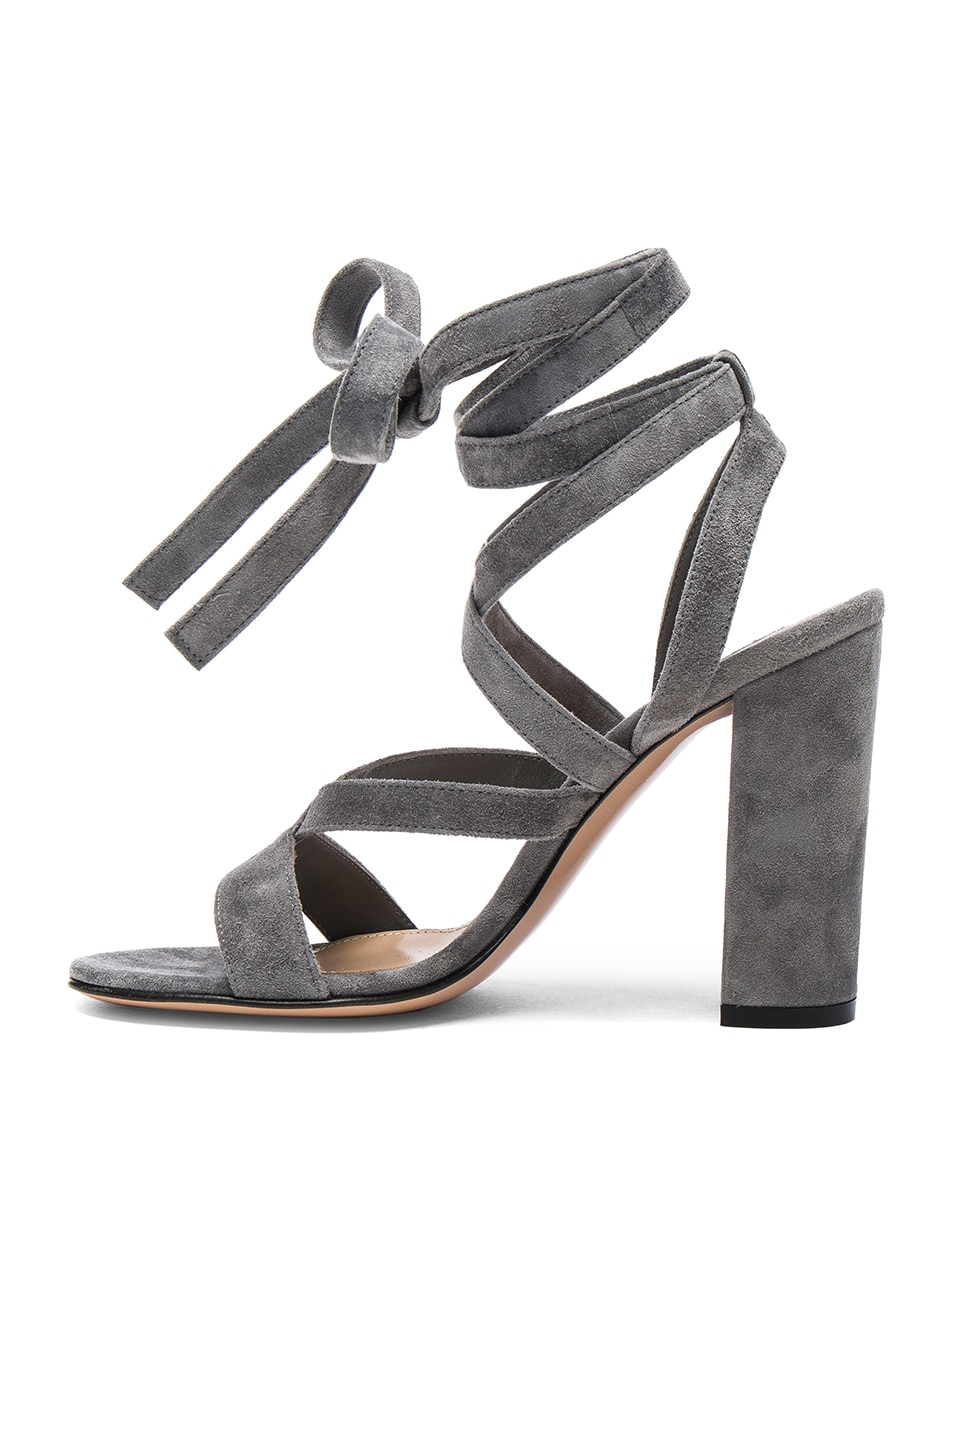 Image 5 of Gianvito Rossi Suede Janis High Sandals in Fumo